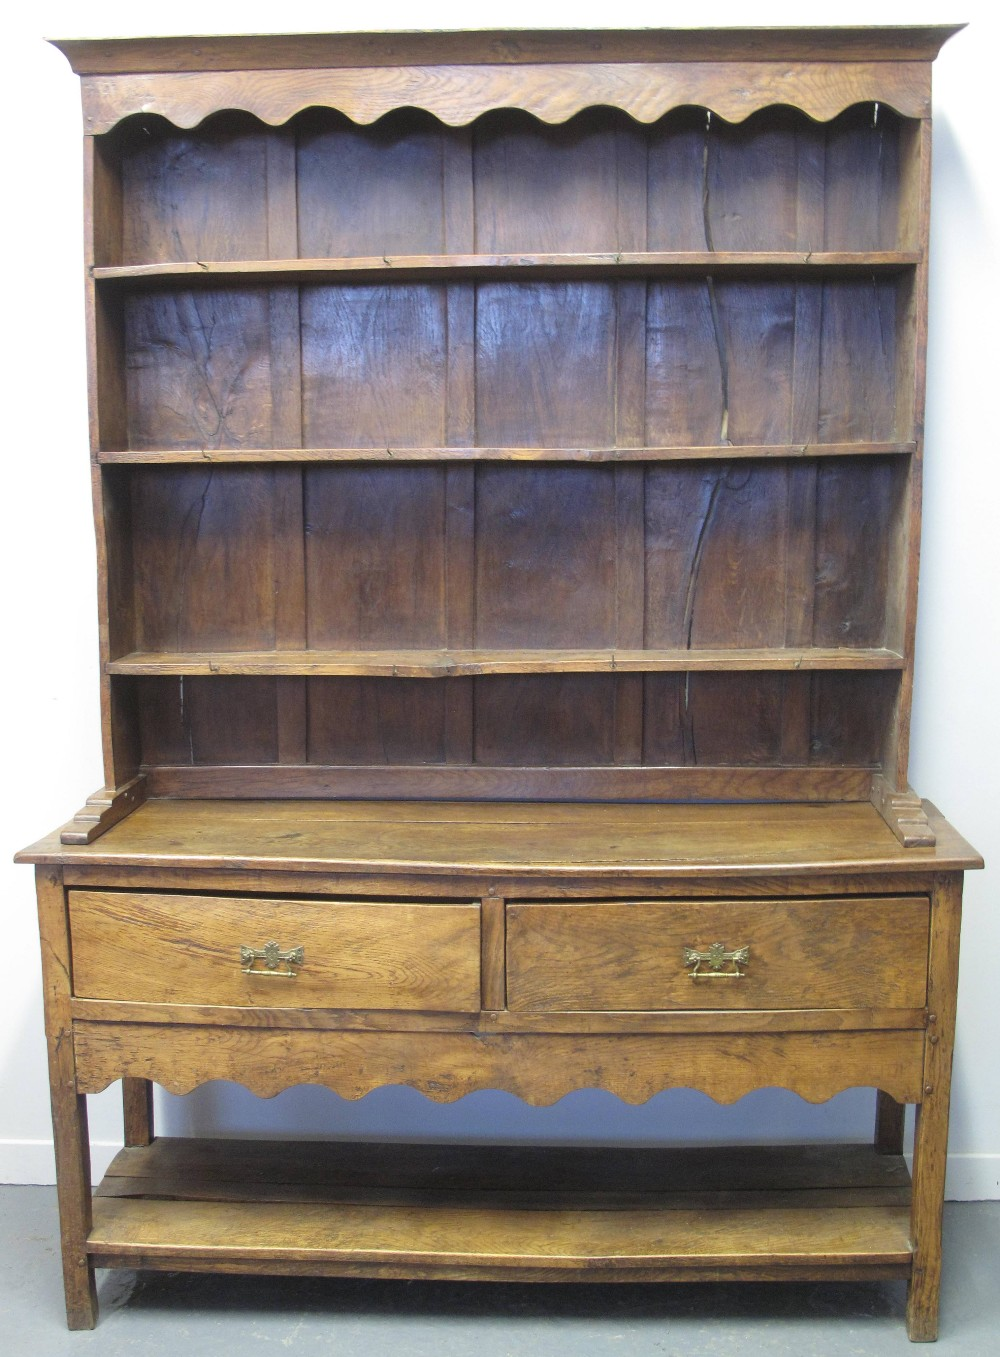 Lot 51 - 18TH CENTURY STYLE OAK POTBOARD DRESSER with boarded three shelf rack back over two deep drawers